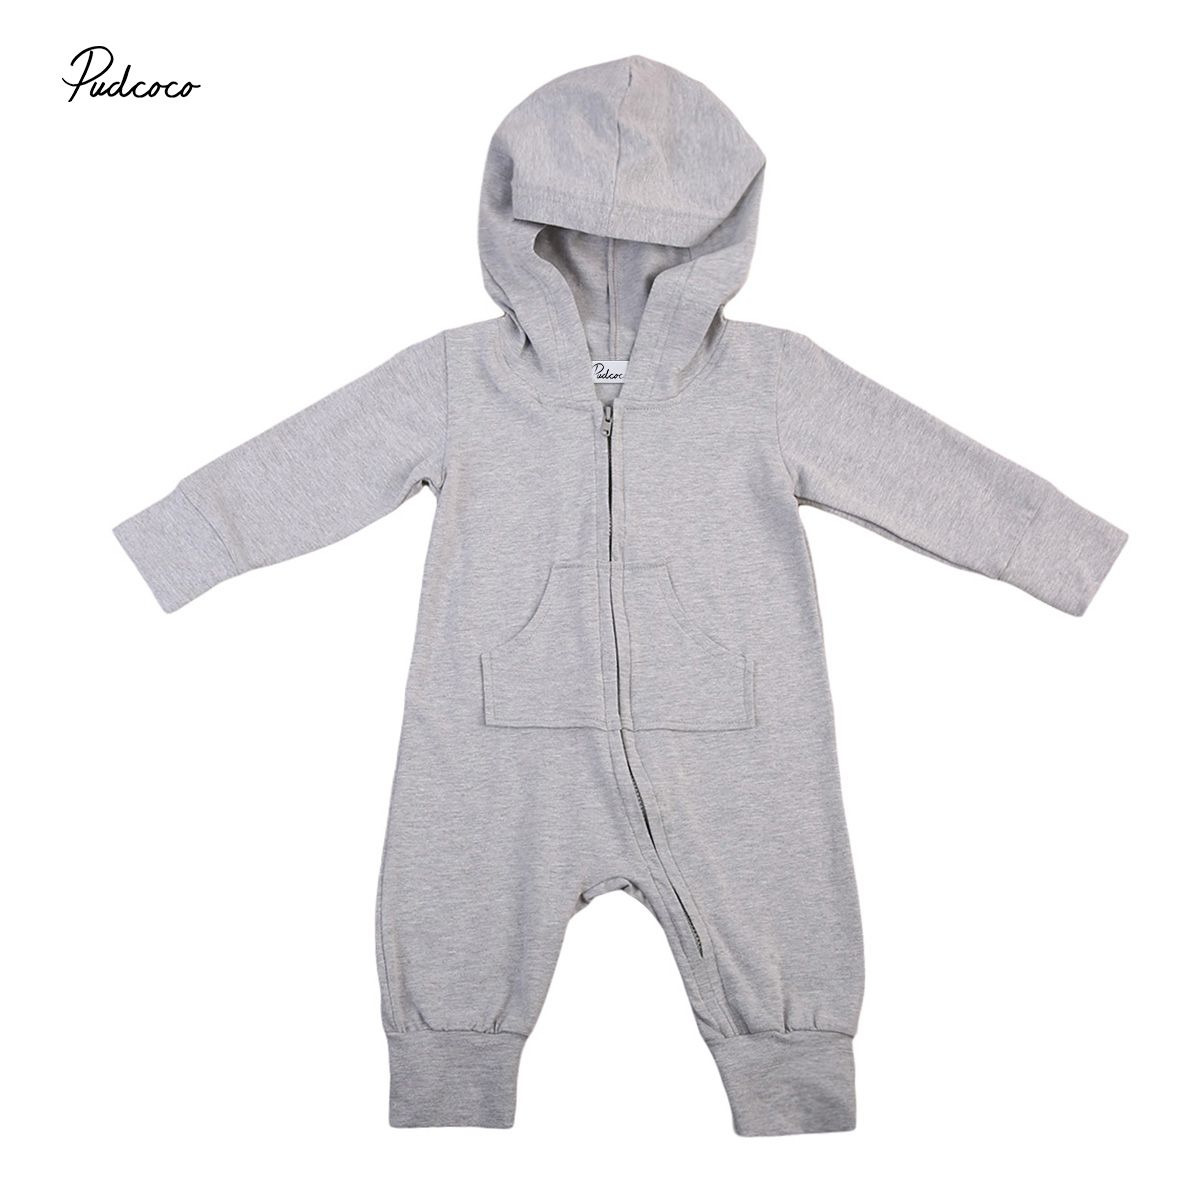 Cartoon Toddler Newborn Baby Boys Girls Romper Long Sleeve Gray Hooded Jumpsuit Zipper Outfits Clothes